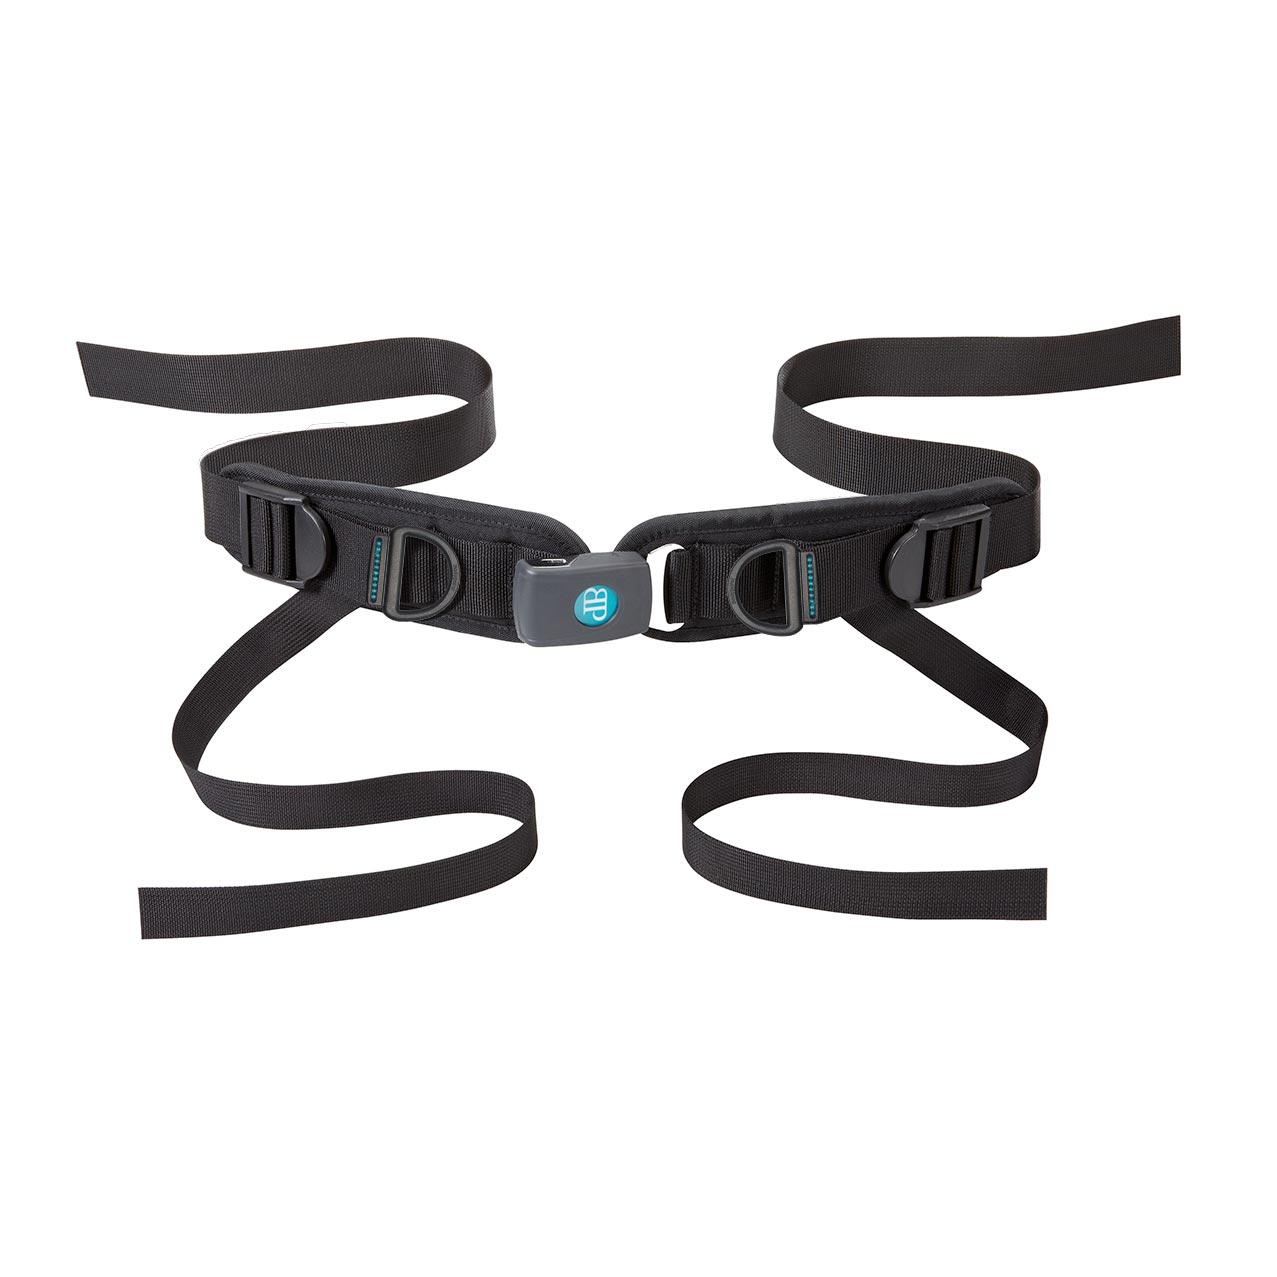 Bodypoint rear-pull four point padded hip belt with push button buckle